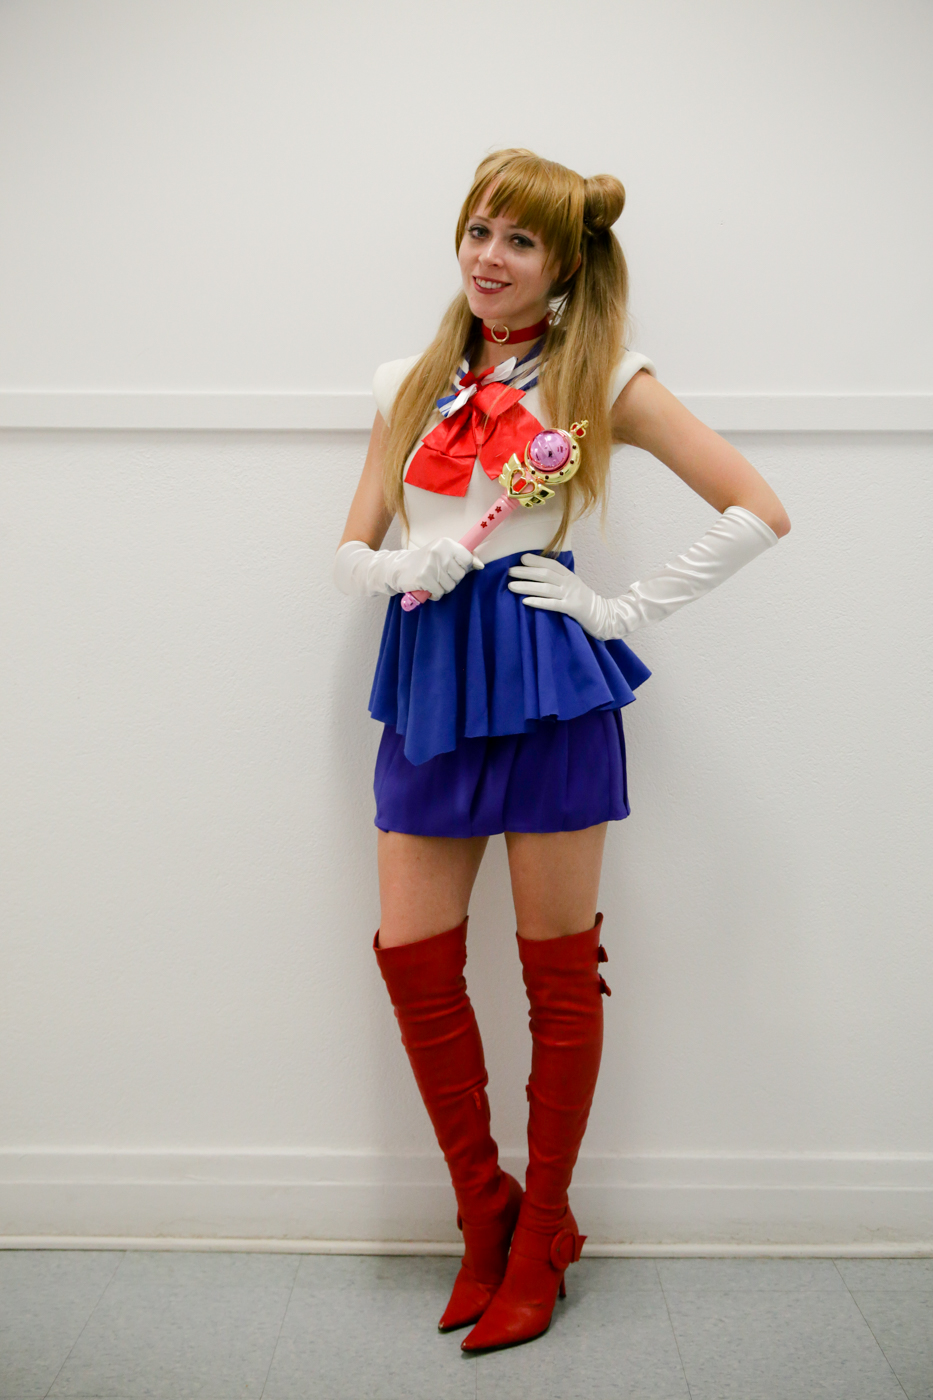 sailor-moon-costume-3-of-7